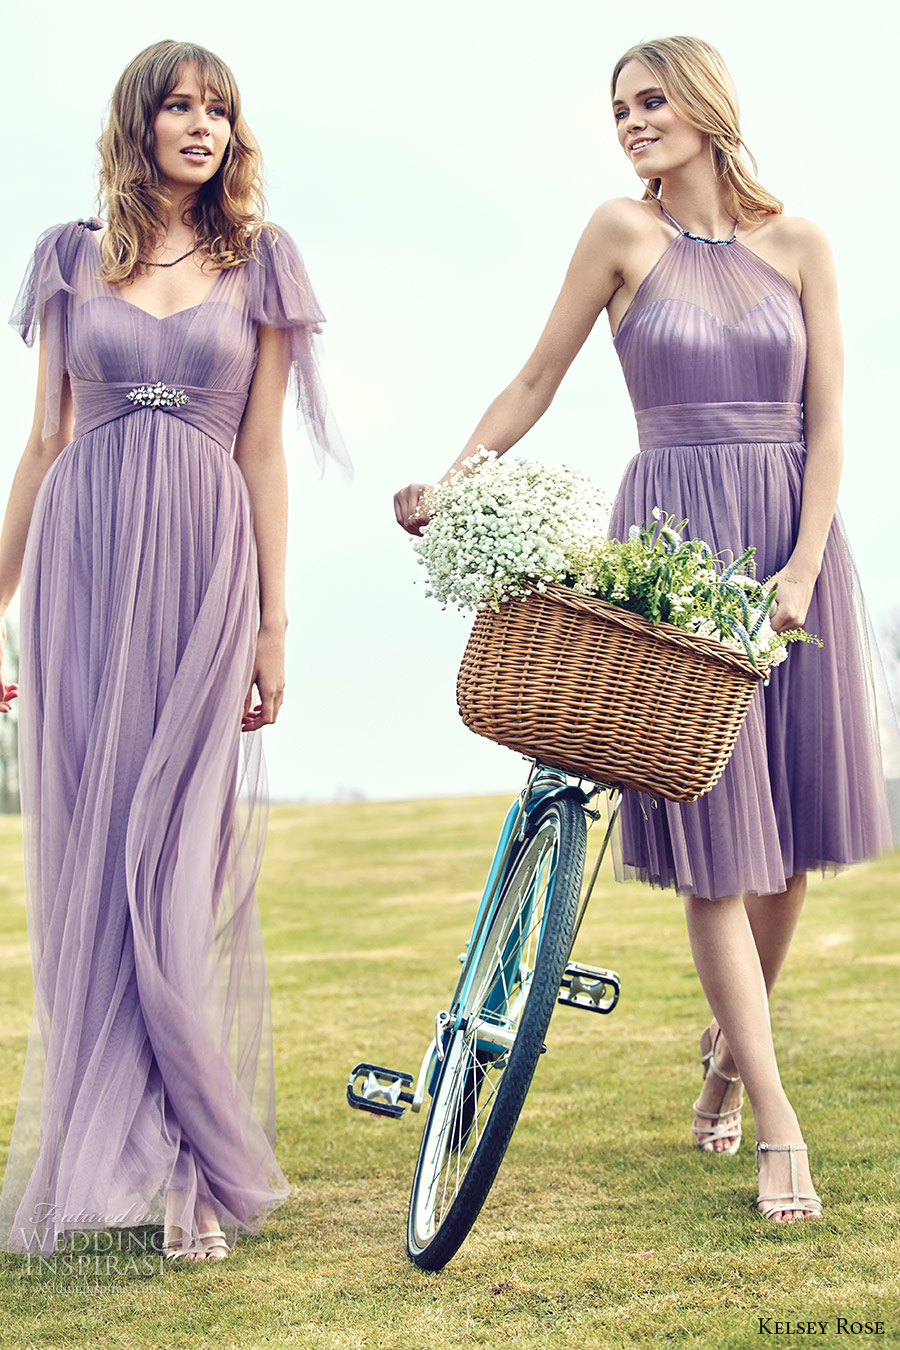 Kelsey rose 2016 bridesmaid dresses pink collection campaign kelsey rose bridesmaids 2016 pastel mix match mismatched bridesmaid dresses lavender wisteria purple lilac mauve romantic ombrellifo Image collections